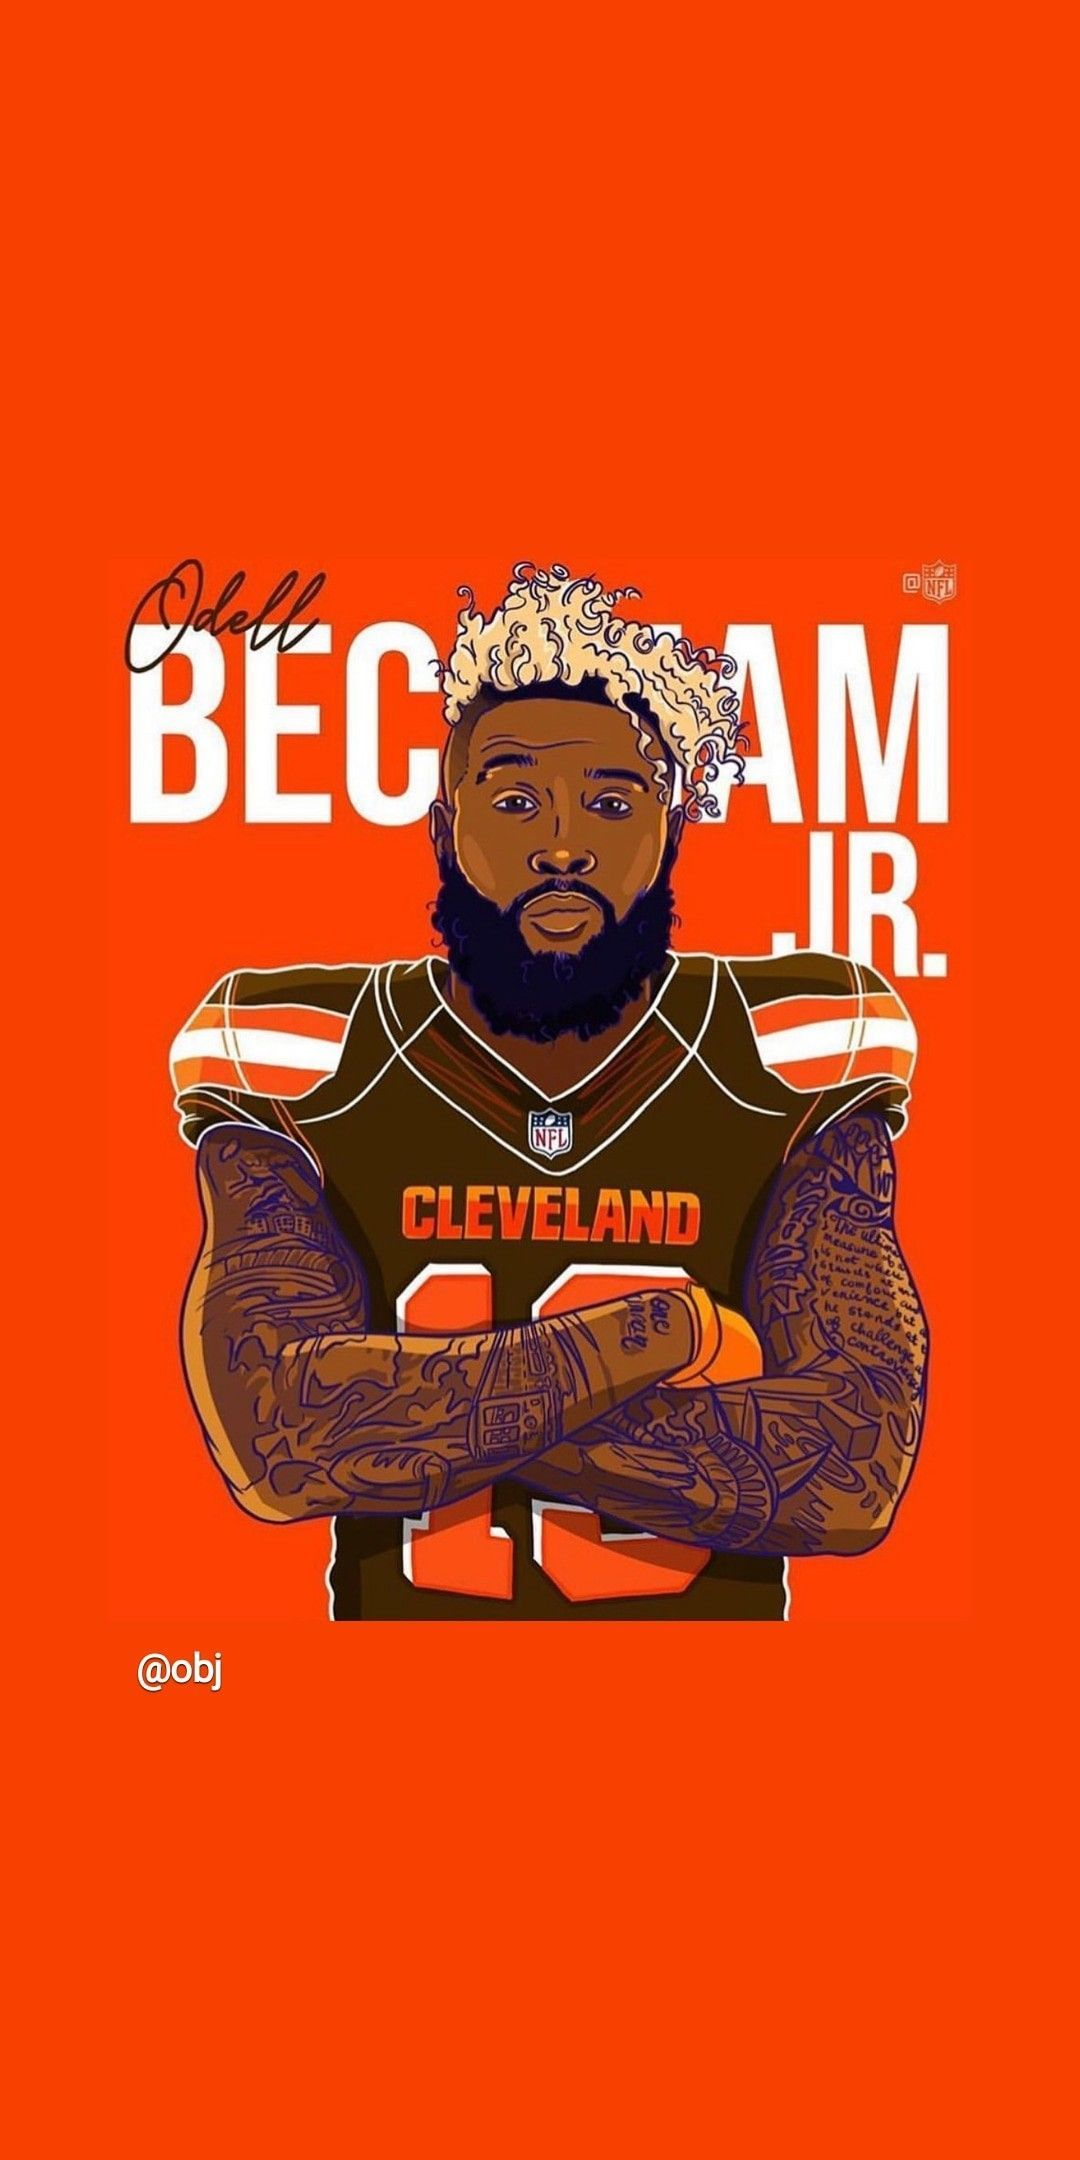 Pin By Angelica Stehr On Animated Images In 2020 Odell Beckham Jr Wallpapers Nfl Football Wallpaper Beckham Jr